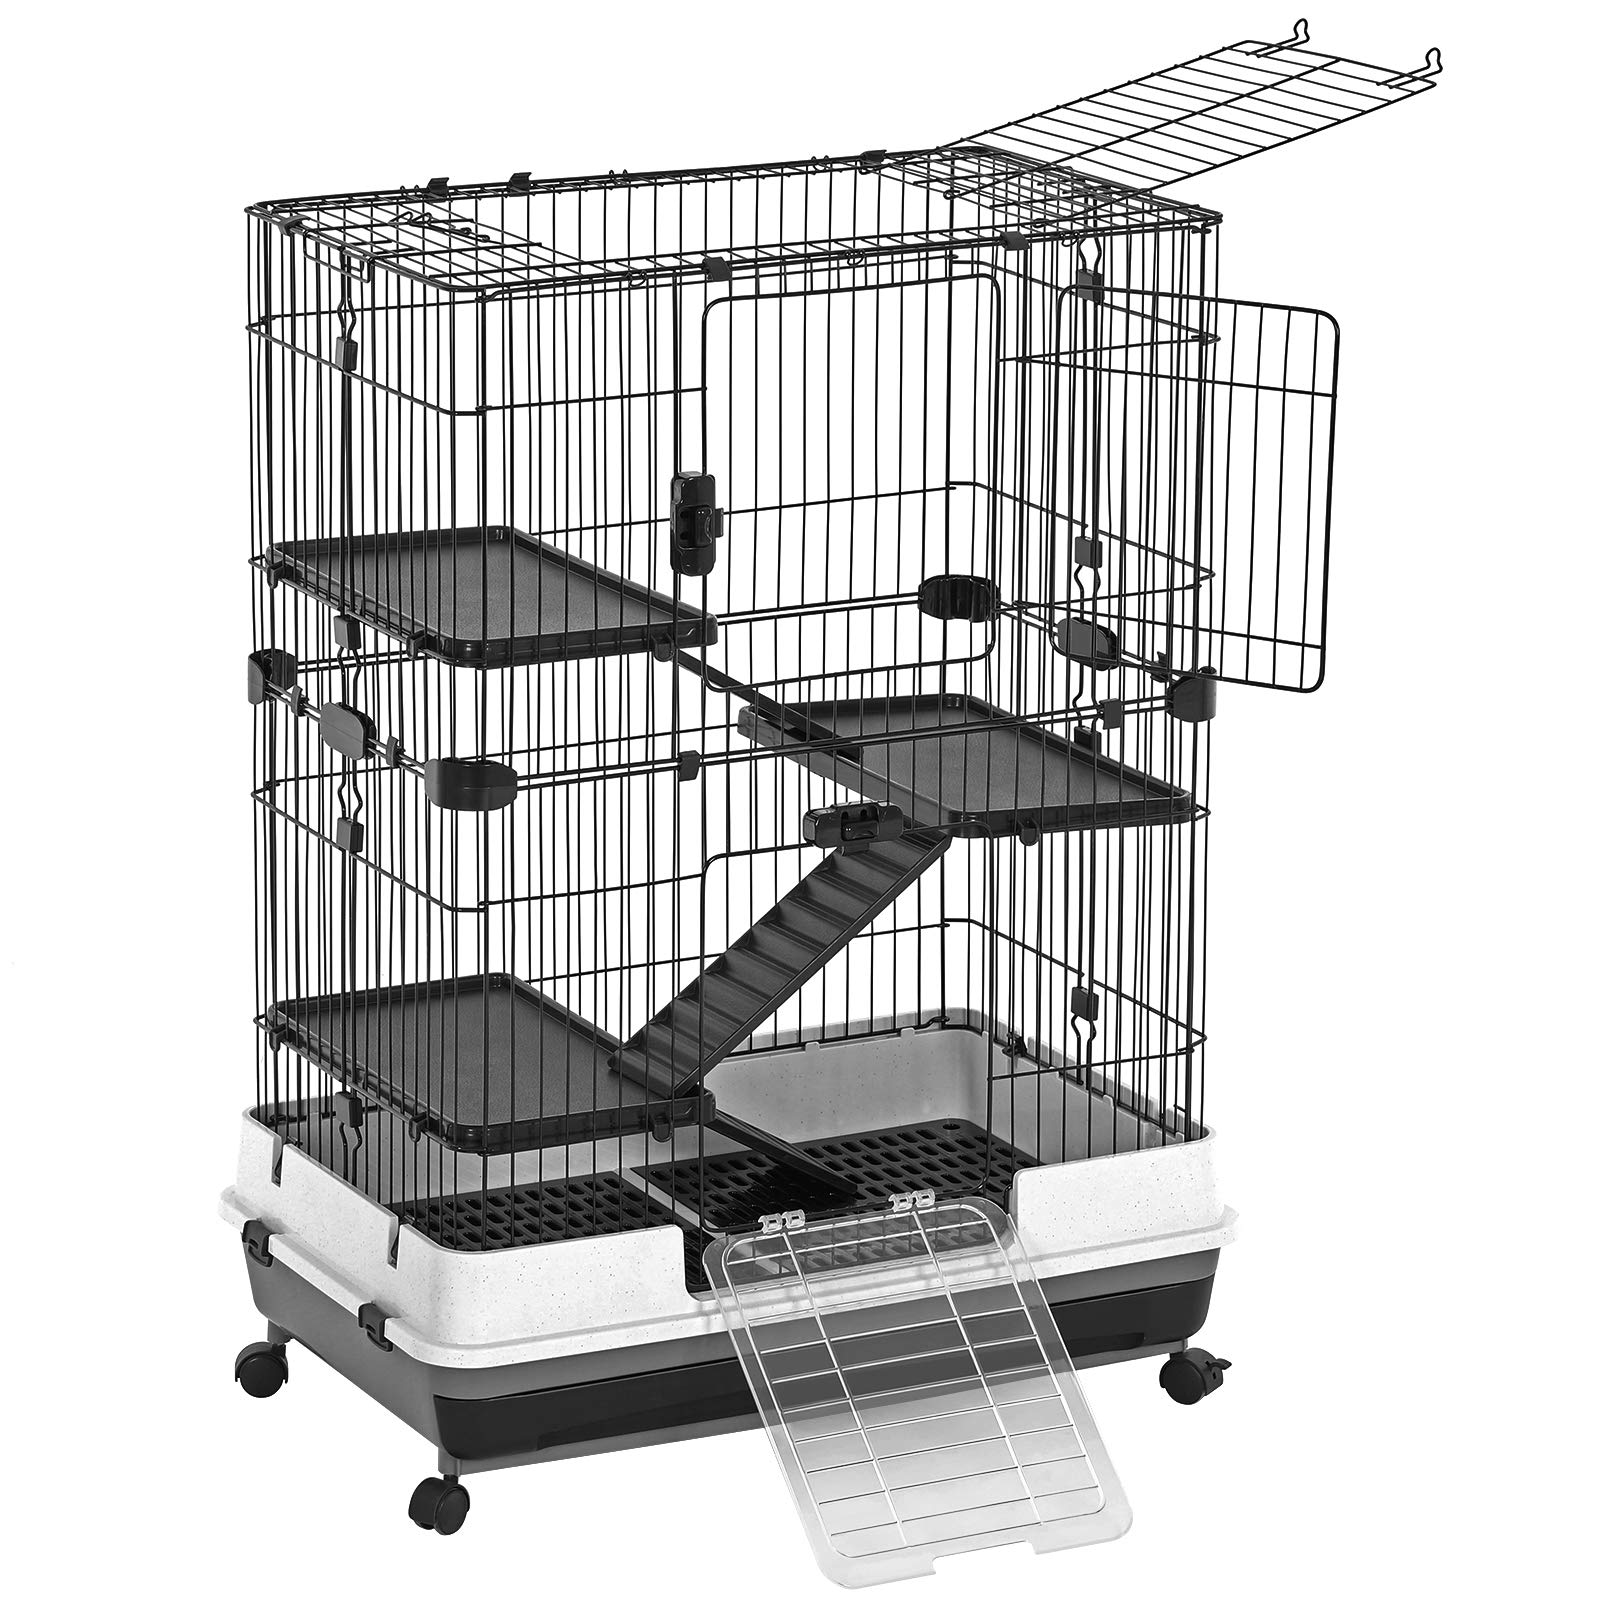 SONGMICS 4-Level Small Animal Pet Cage, Ferret Chinchilla Playpen Hutch with 3 Platforms, 3 Ramps, Leakproof Litter Tray, 3 Doors, and Lockable Wheels, Black UPSC02BK by SONGMICS